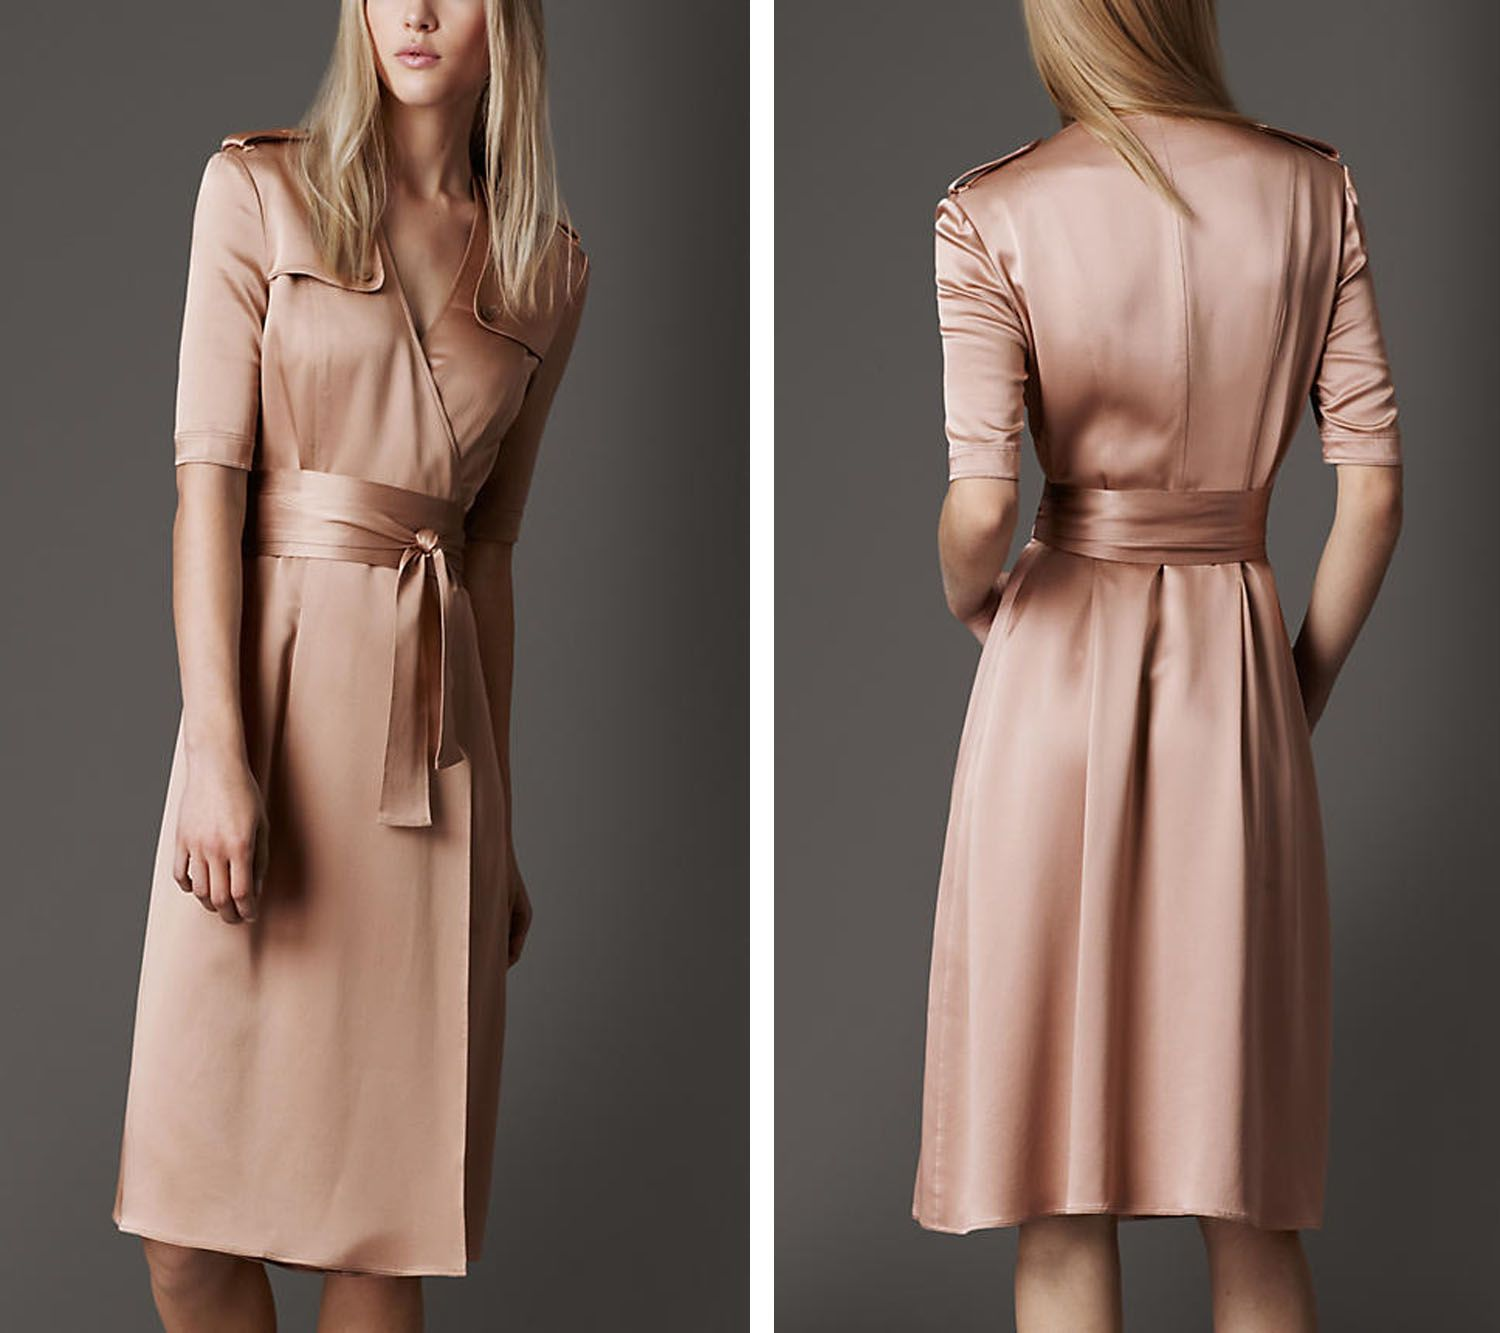 Burberry Silk Trench Wrap Dress as Women Fashion Collection | More ...